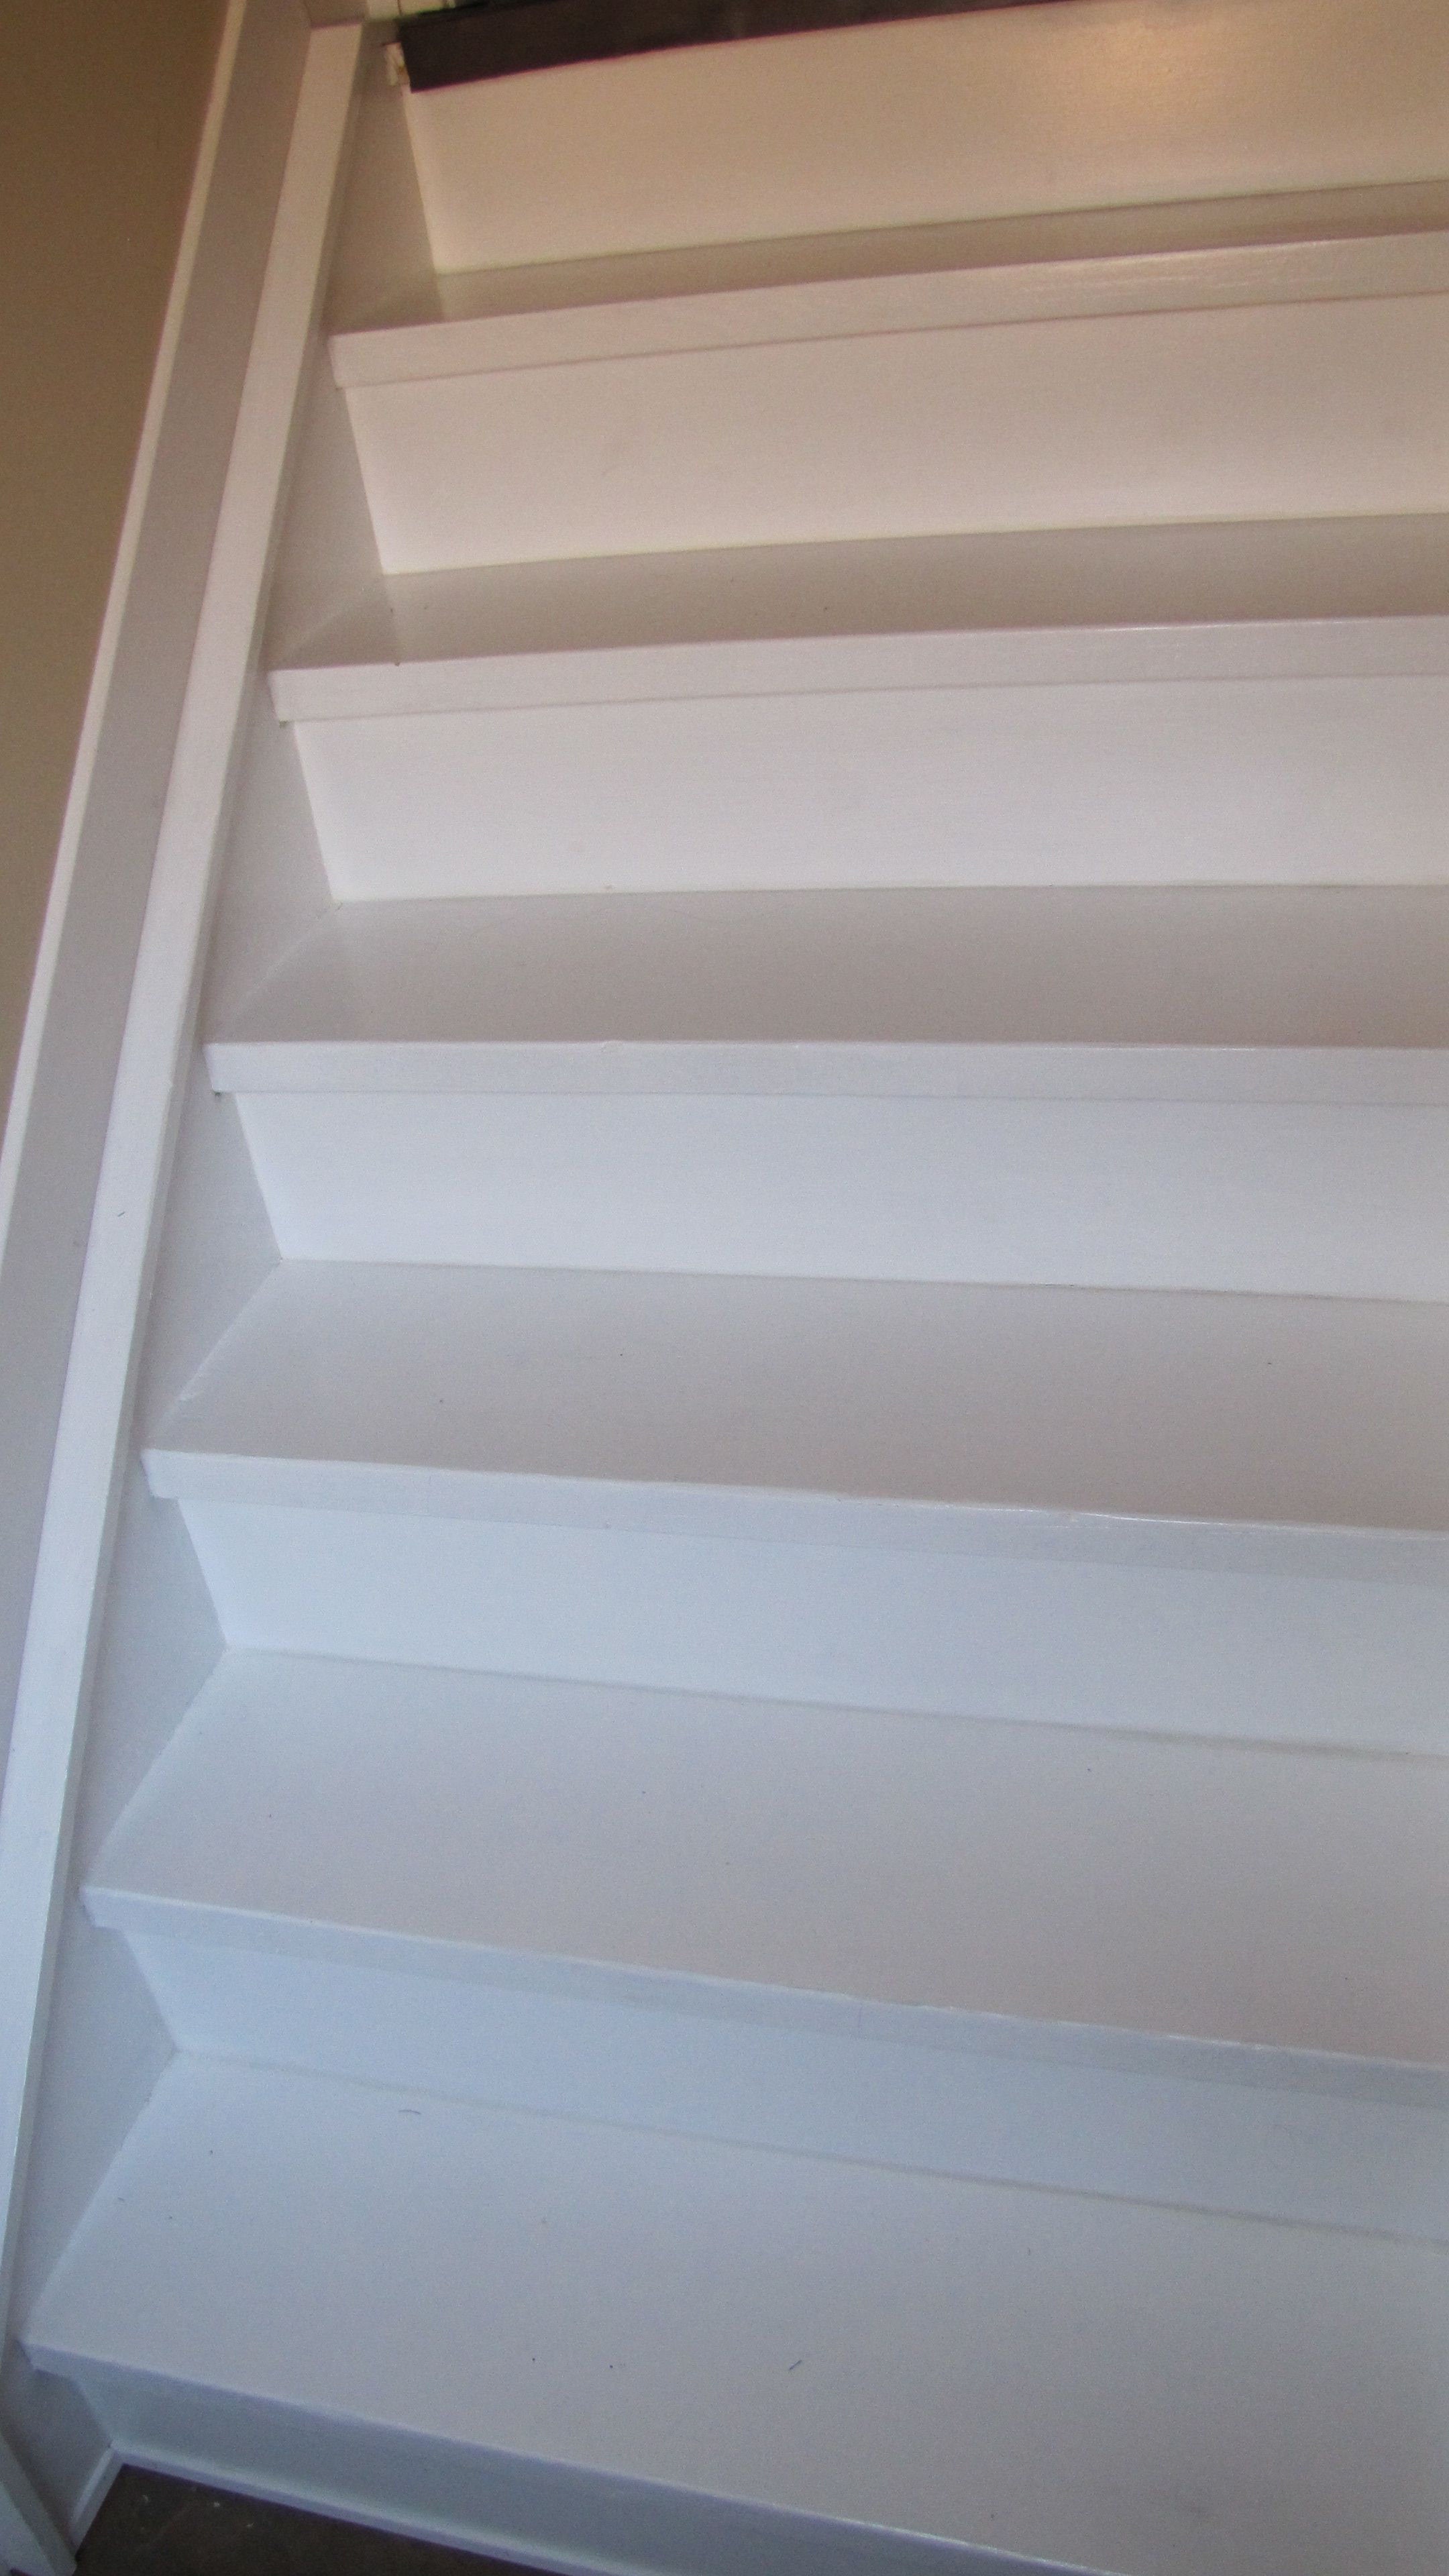 howto stairs stripped to subfloor & painted Diy stairs